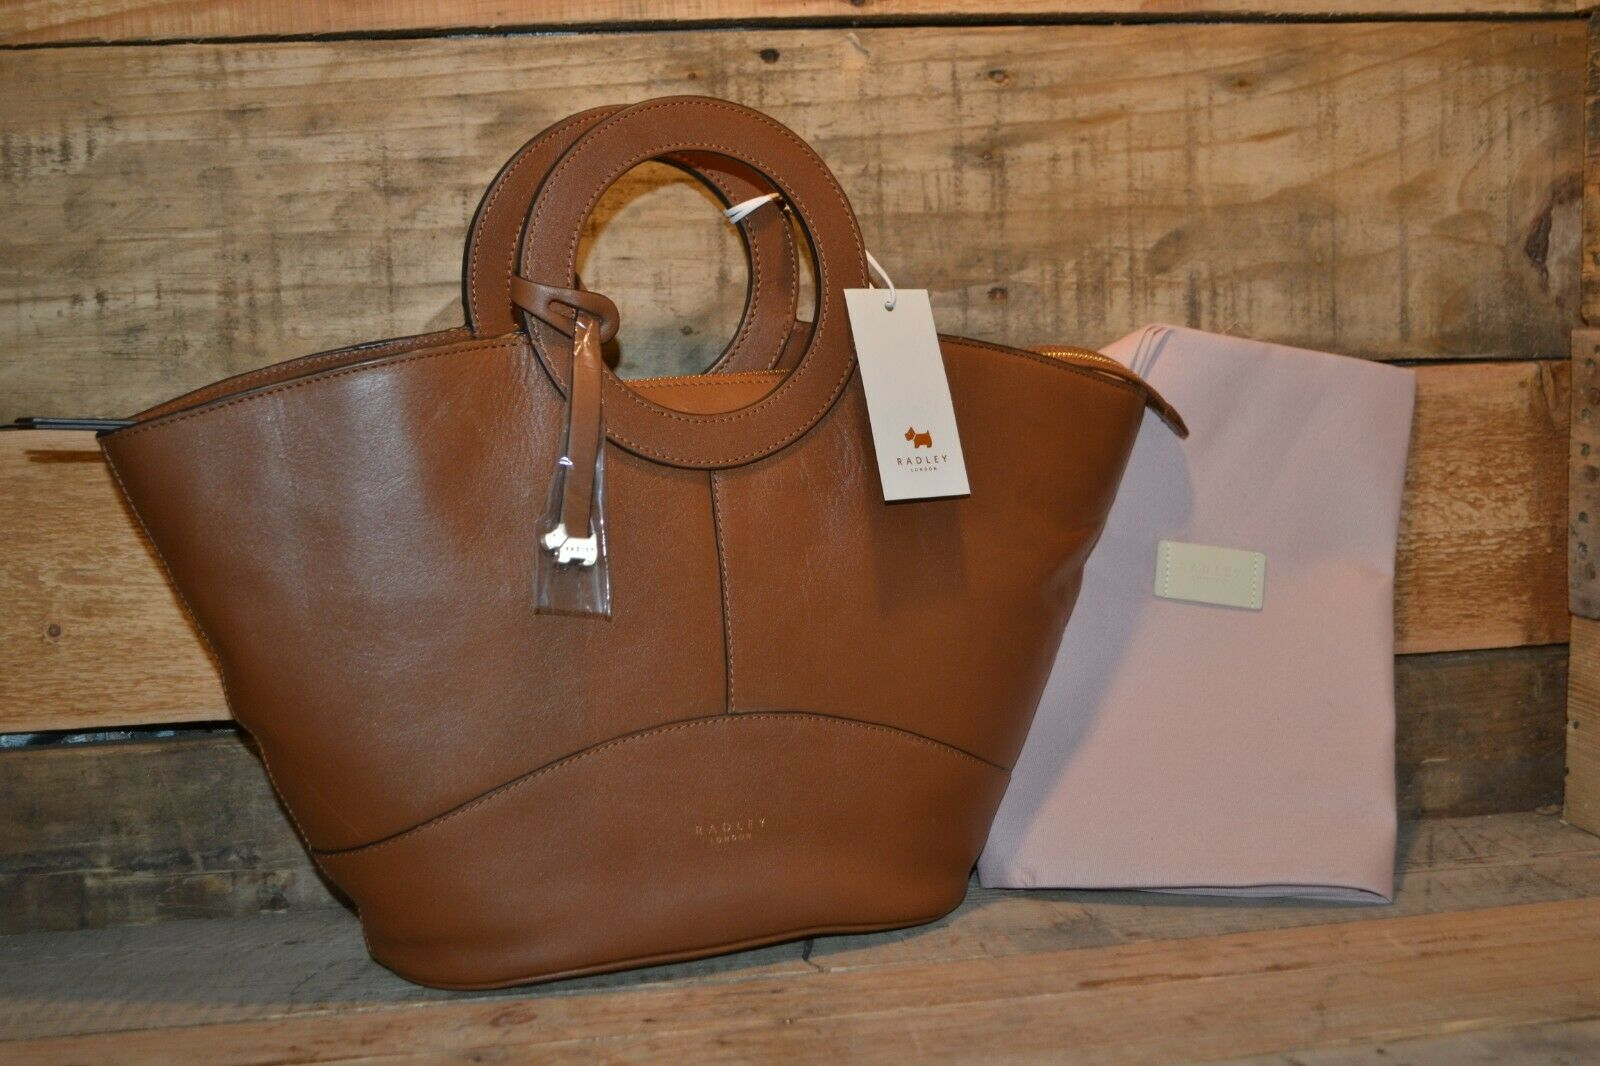 Market Street Brown Tote Purse 15022